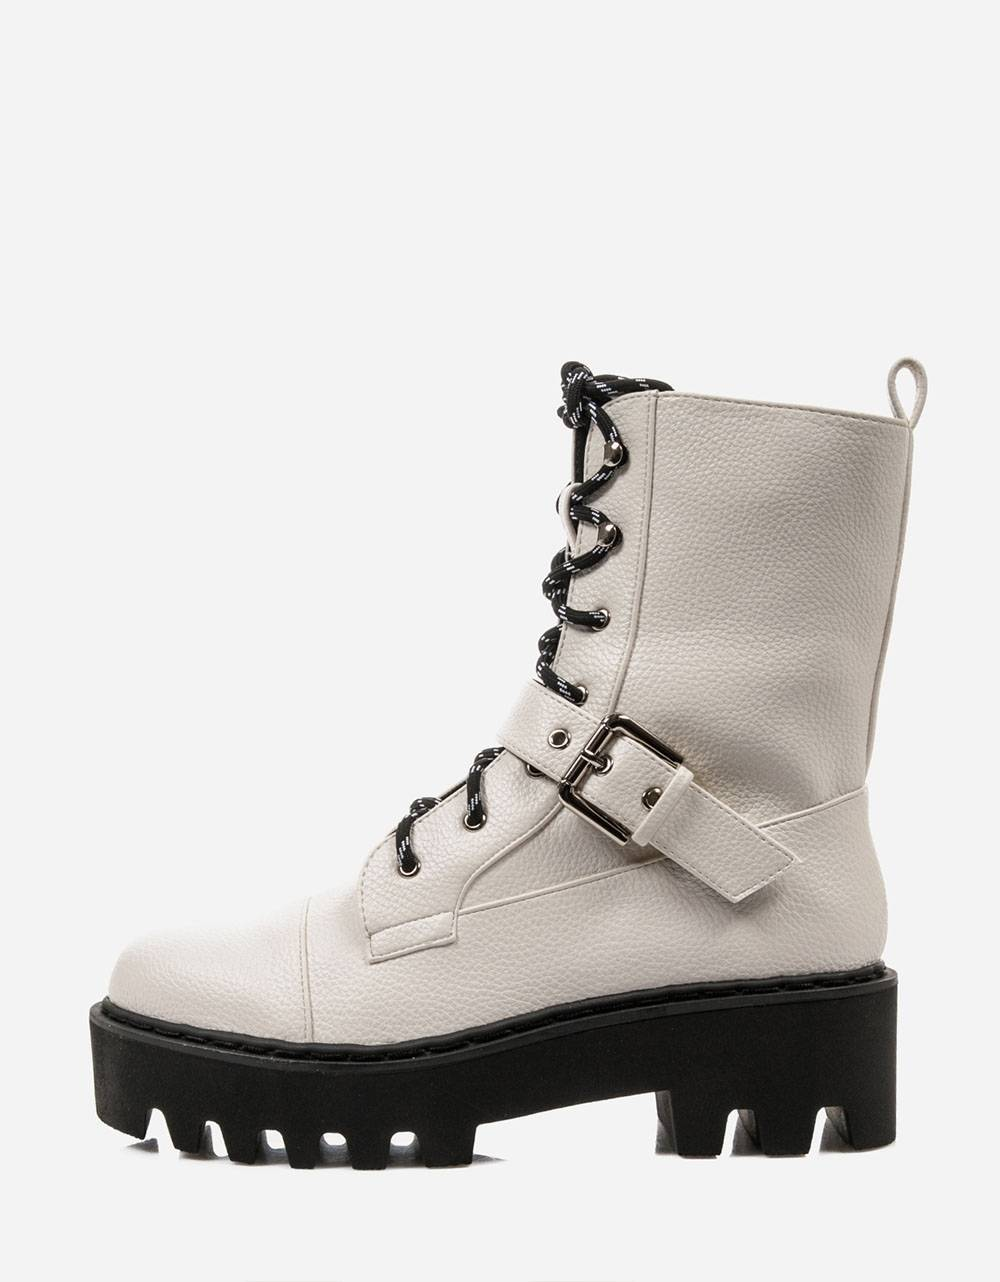 NA-KD basic lace up combat boots - off white NA-KD Other shoes 72,95 €